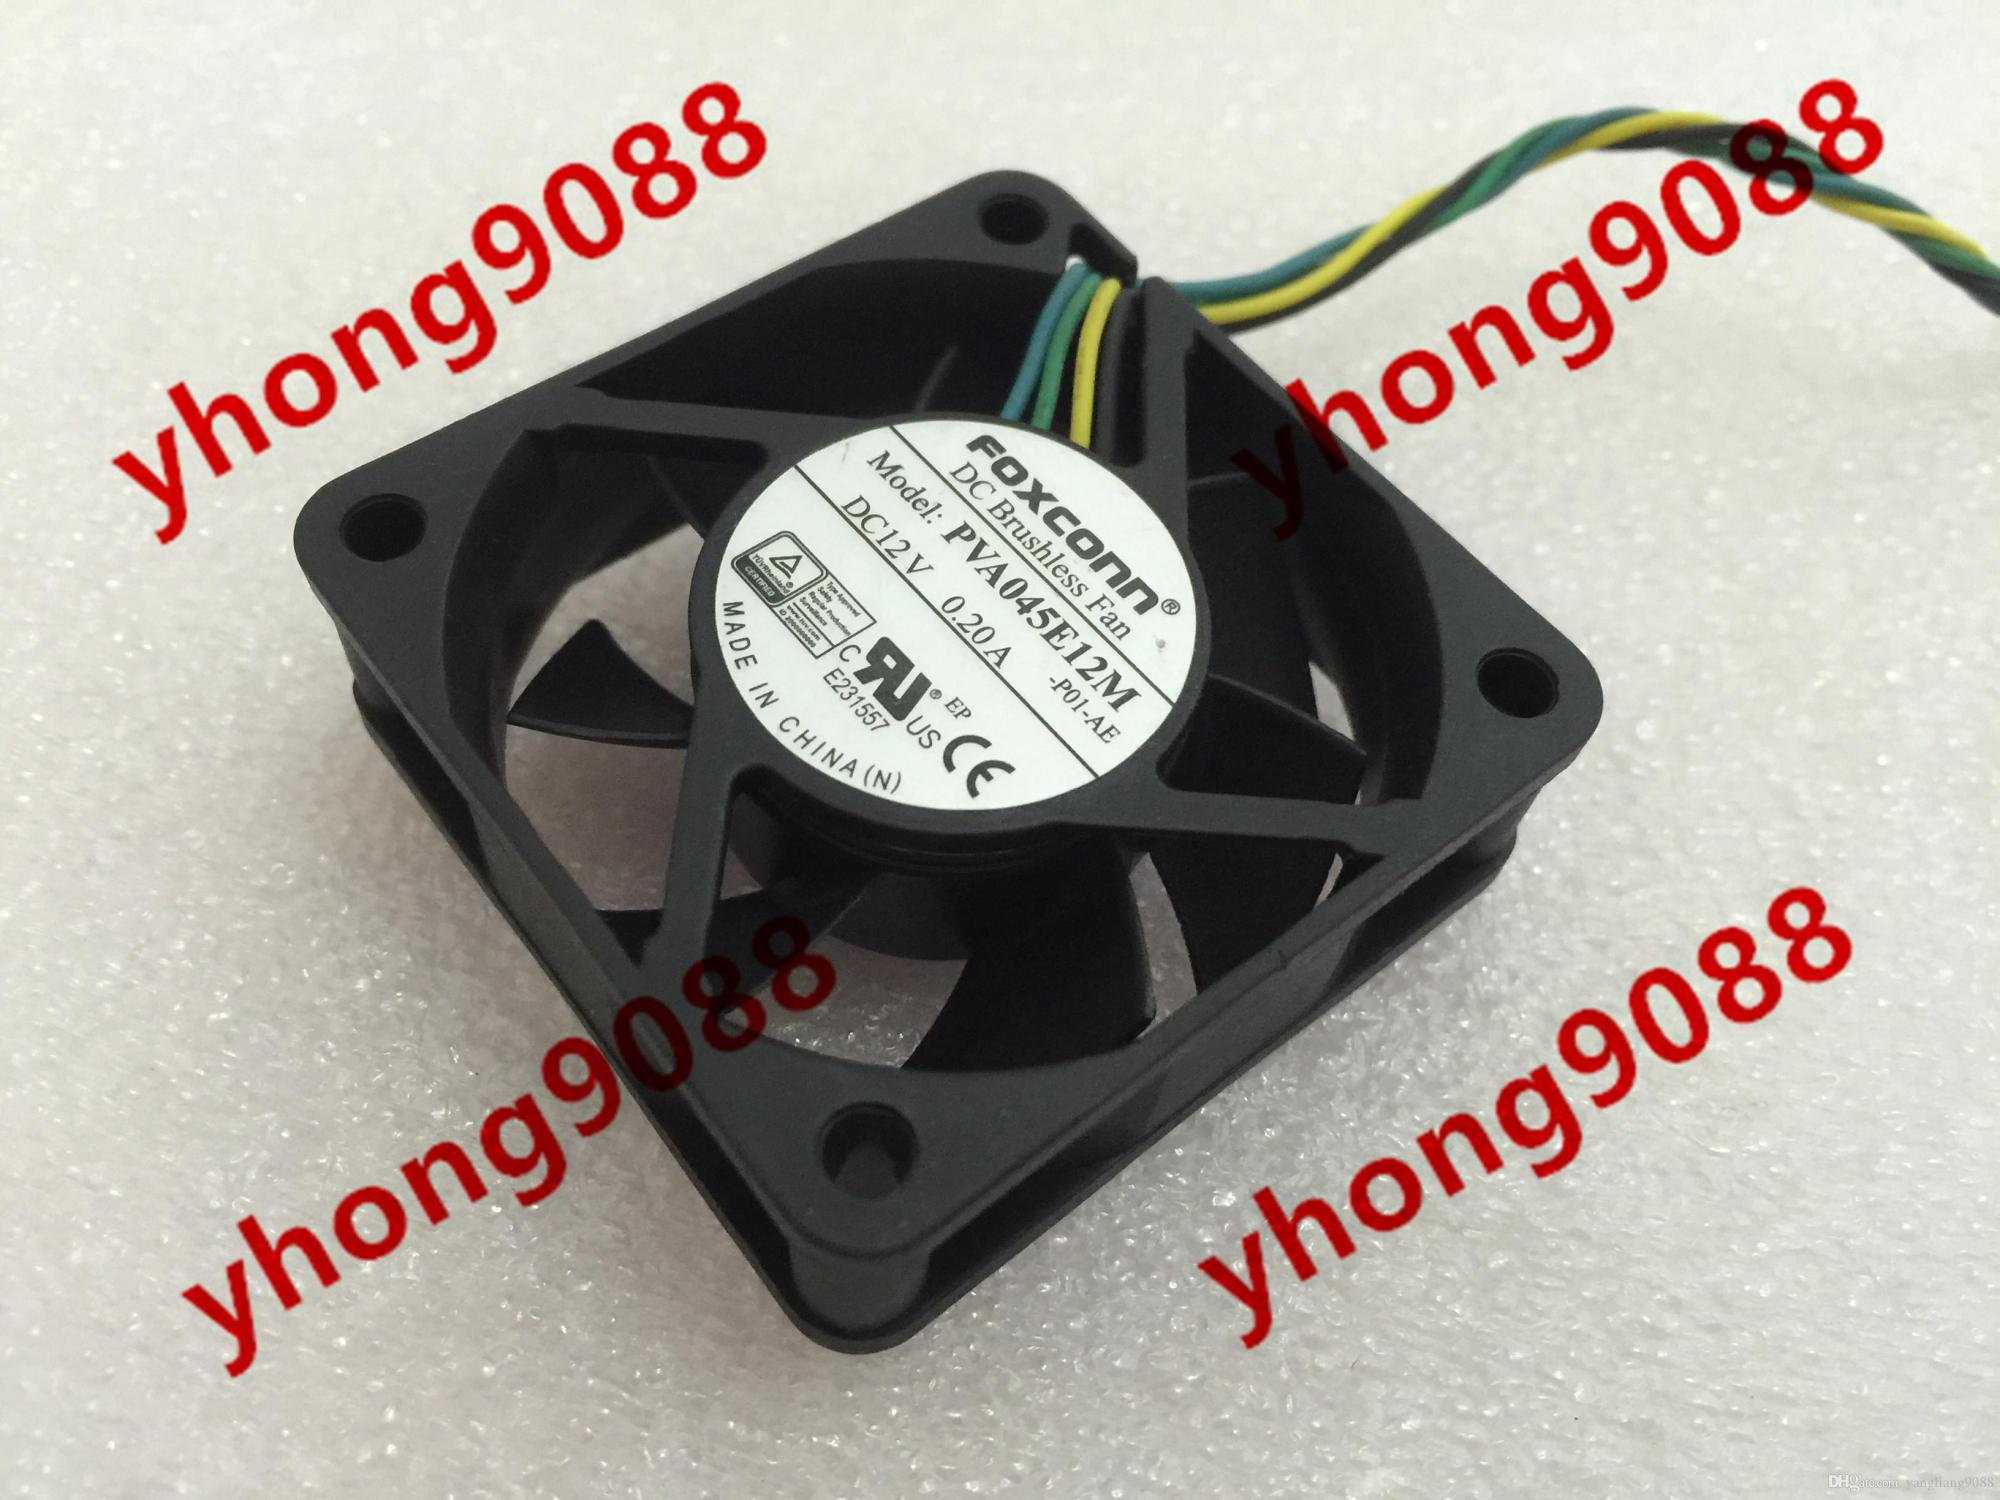 hight resolution of 2019 for foxconn pva045e12m p01 ae dc 12v 0 20a 4 wire 4 pin connector 40mm 45x45x15mm server square fan from yangliang9088 26 89 dhgate com